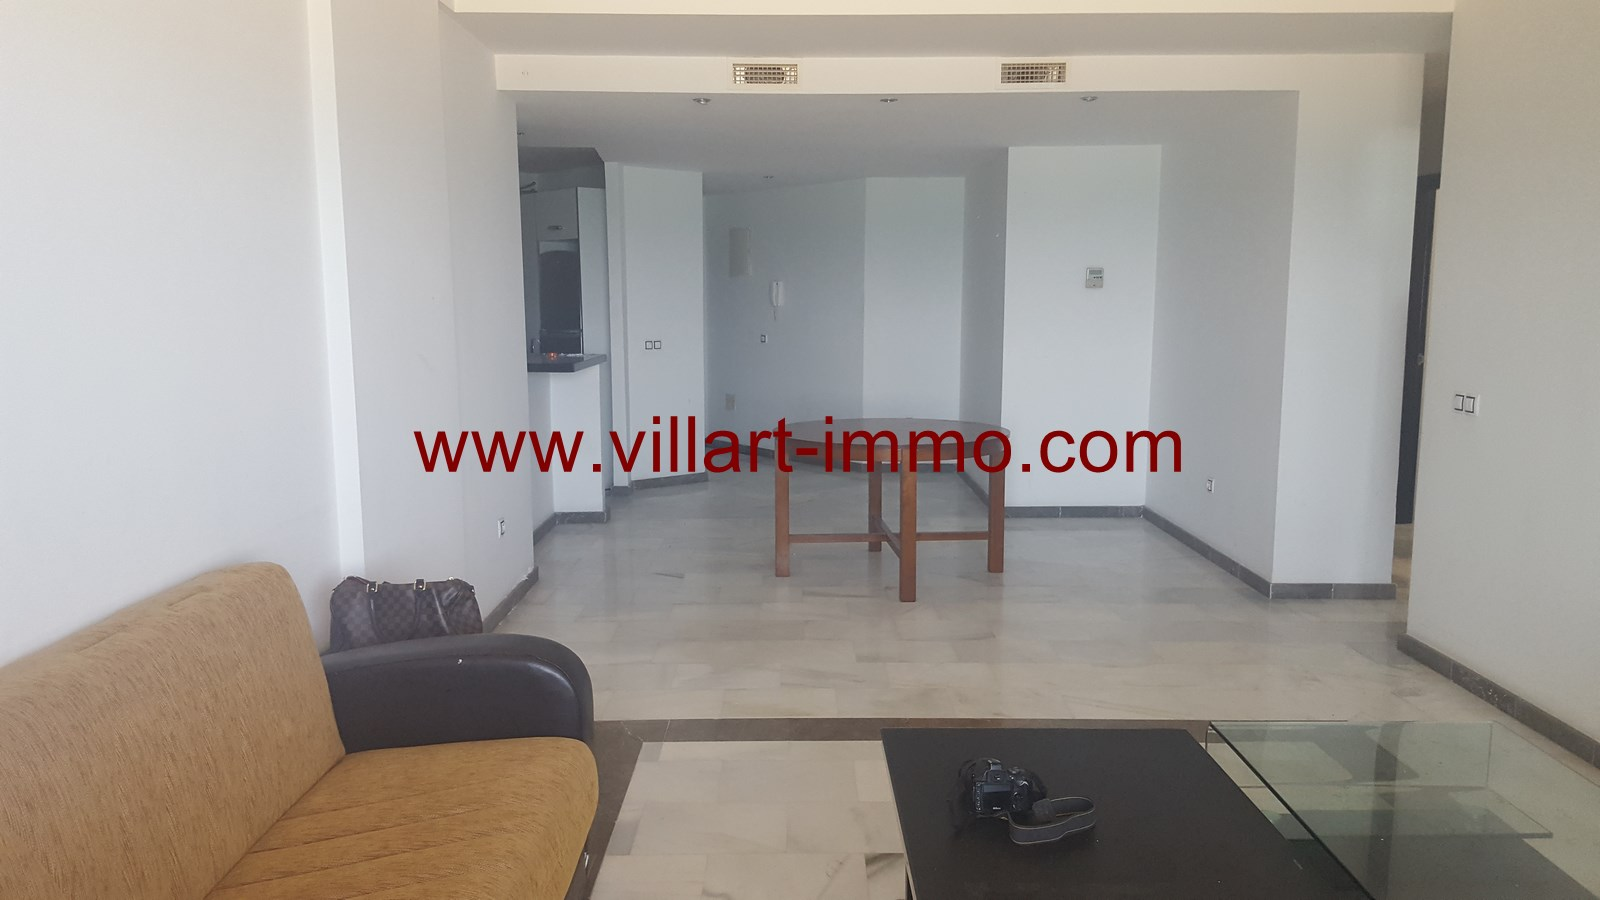 2-a-vendre-appartement-tanger-quartier-playa-salon-1-va433-villart-immo